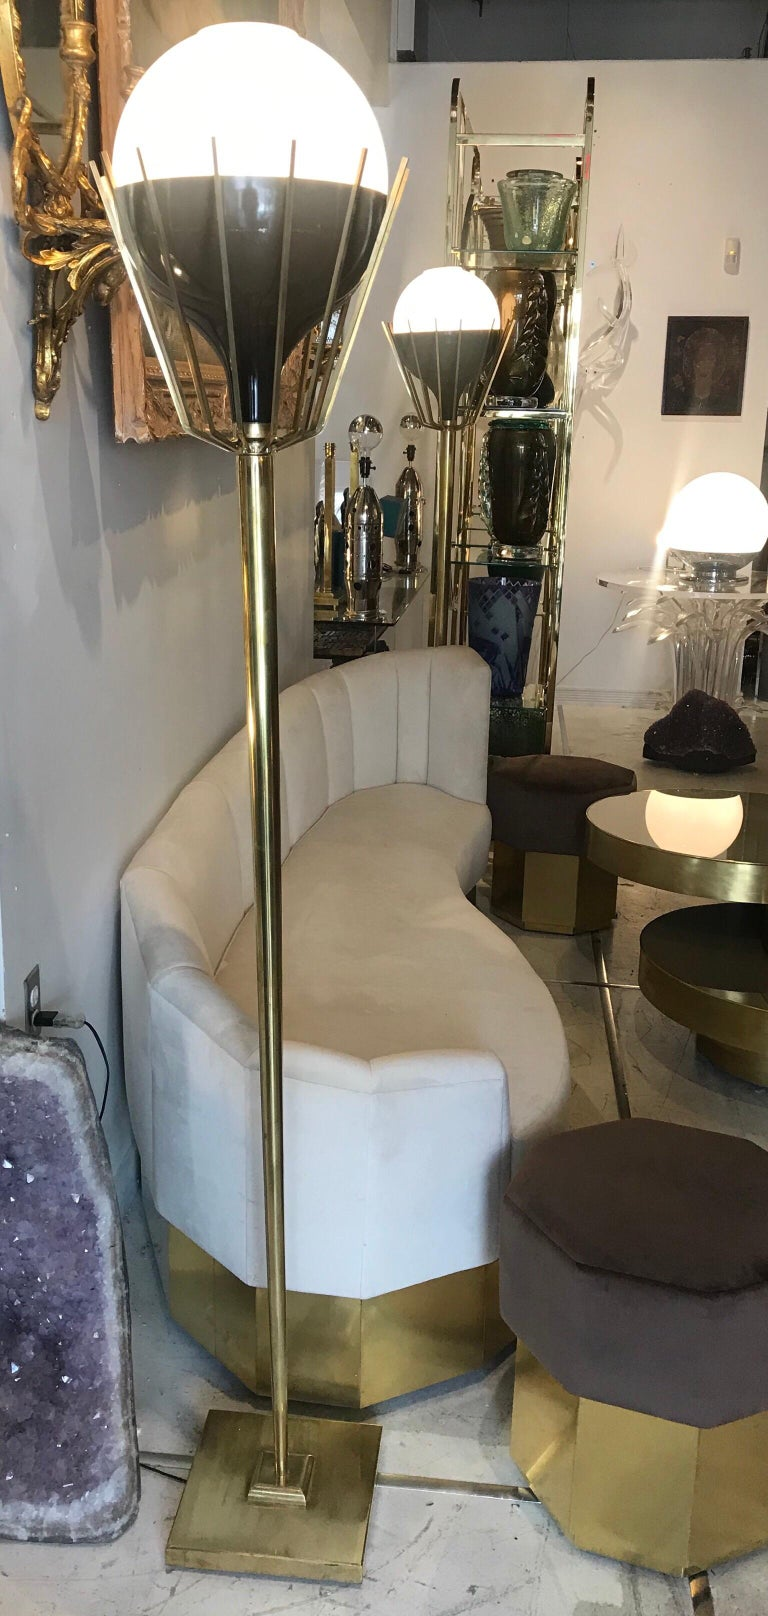 Pair of Mid-Century Modern Brass Floor Lamps with Glass Globes For Sale 2